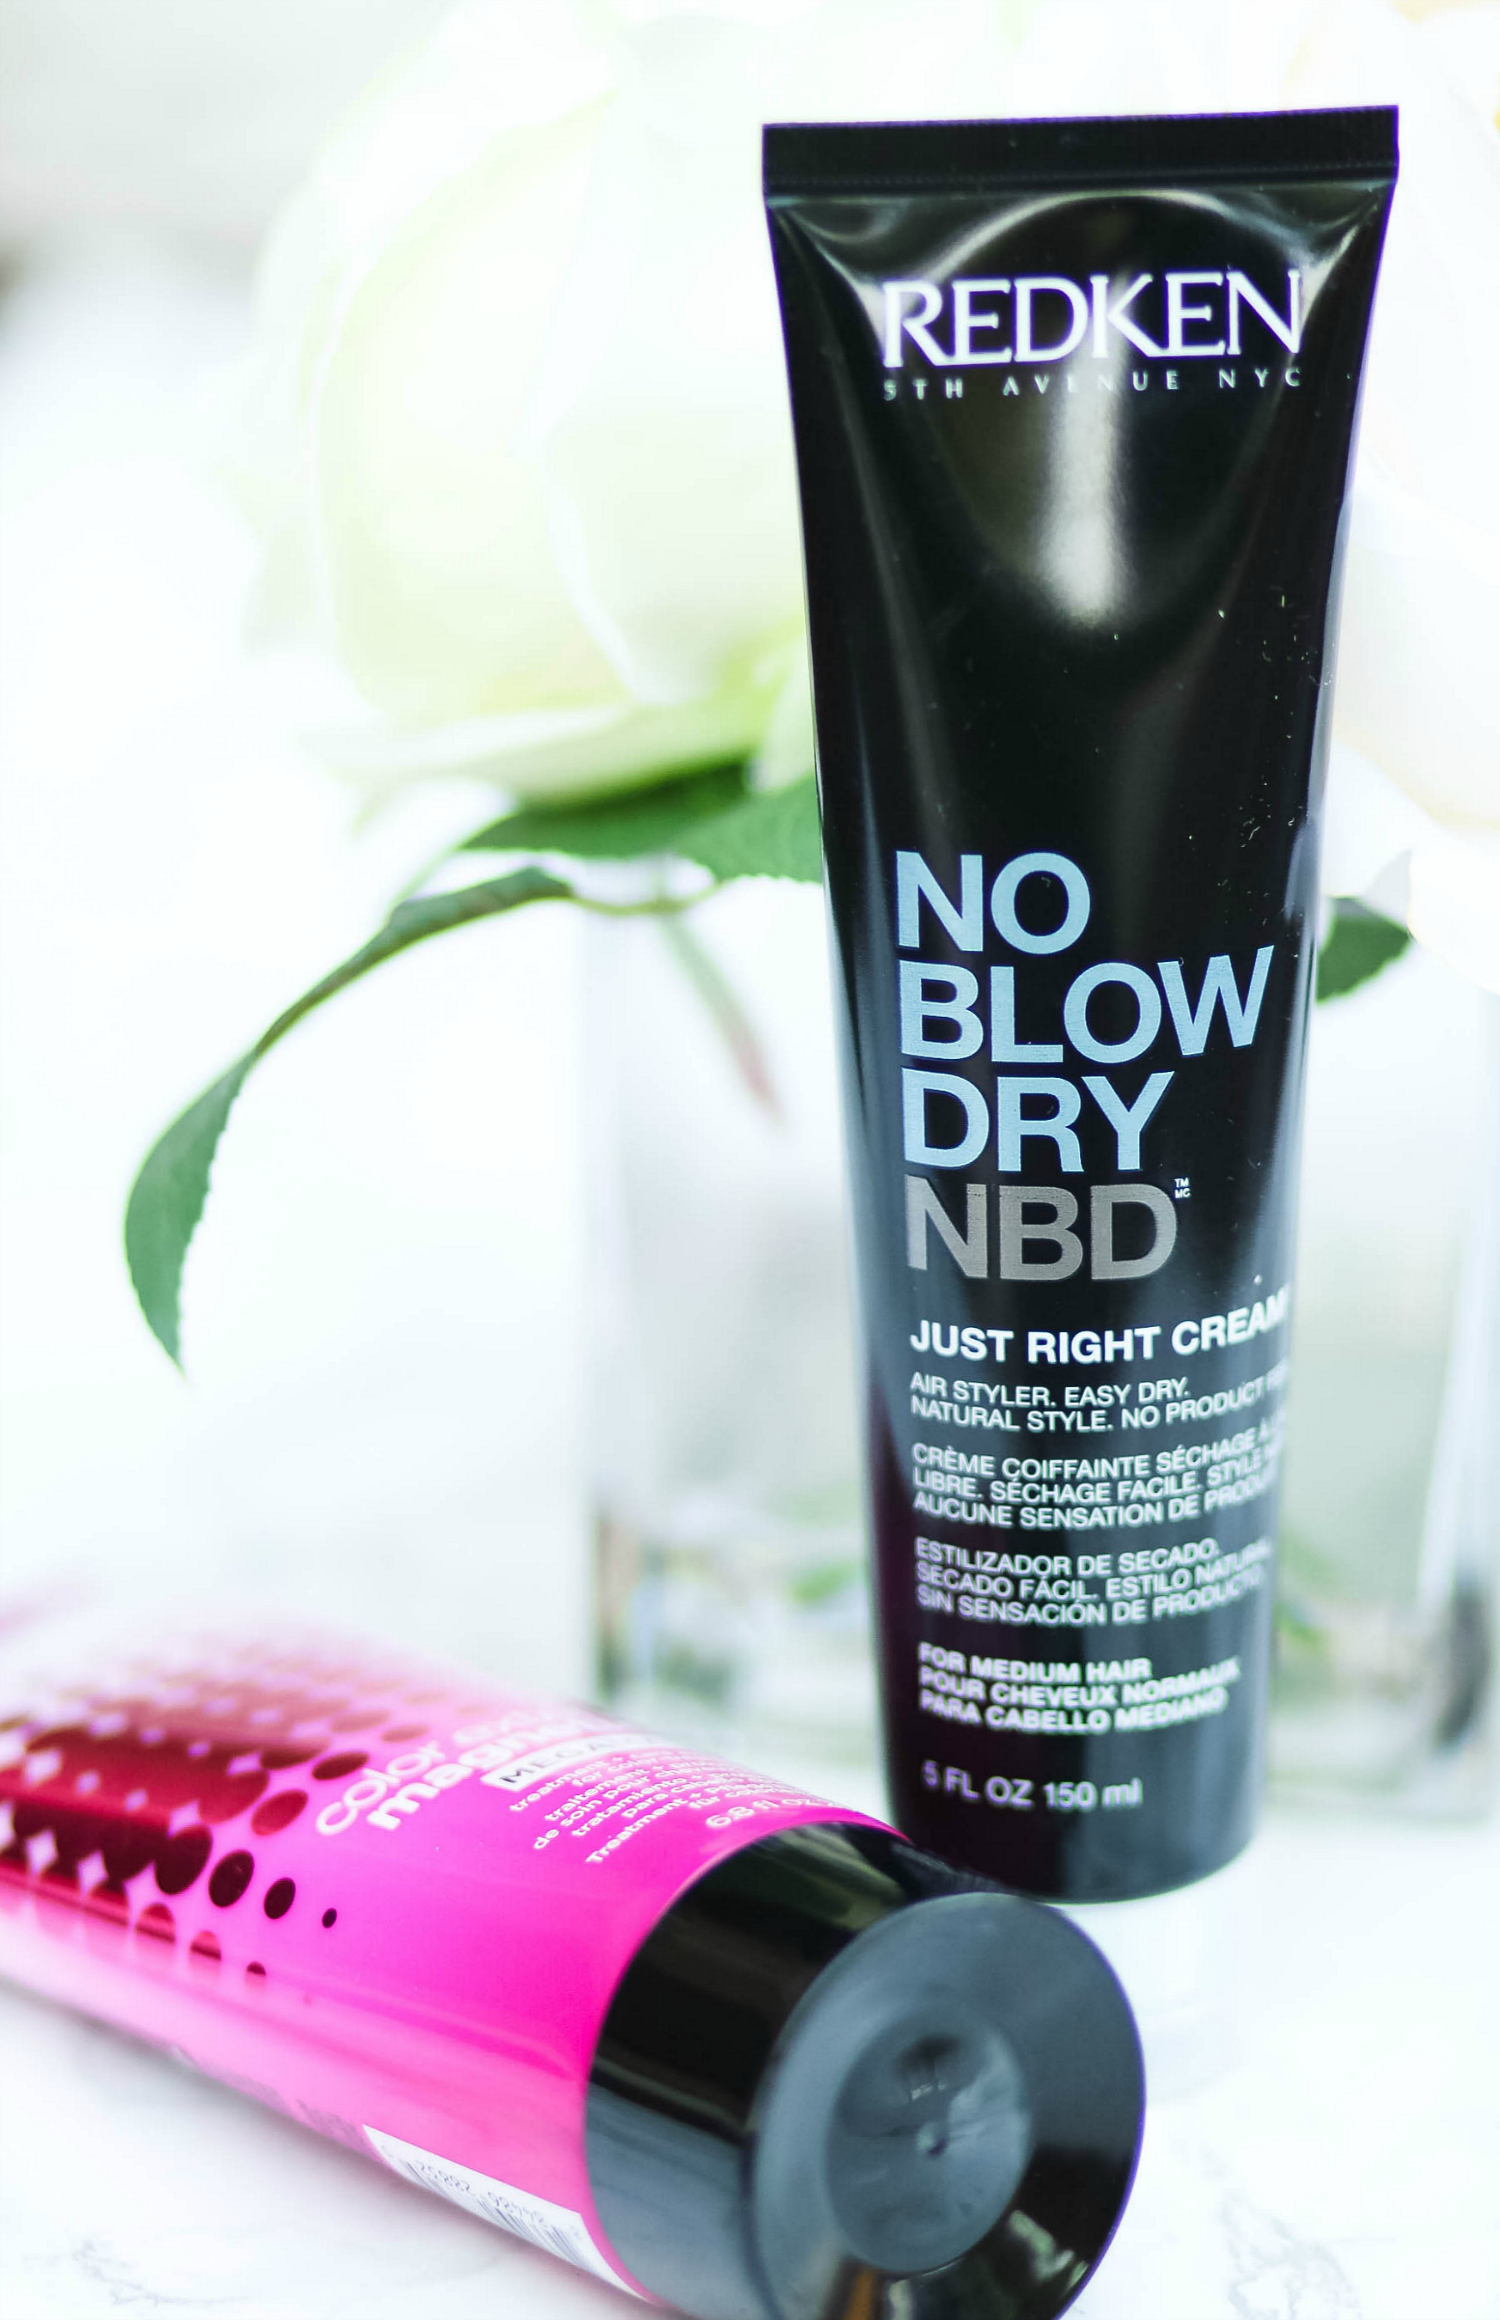 Redken's best products for dry frizzy hair